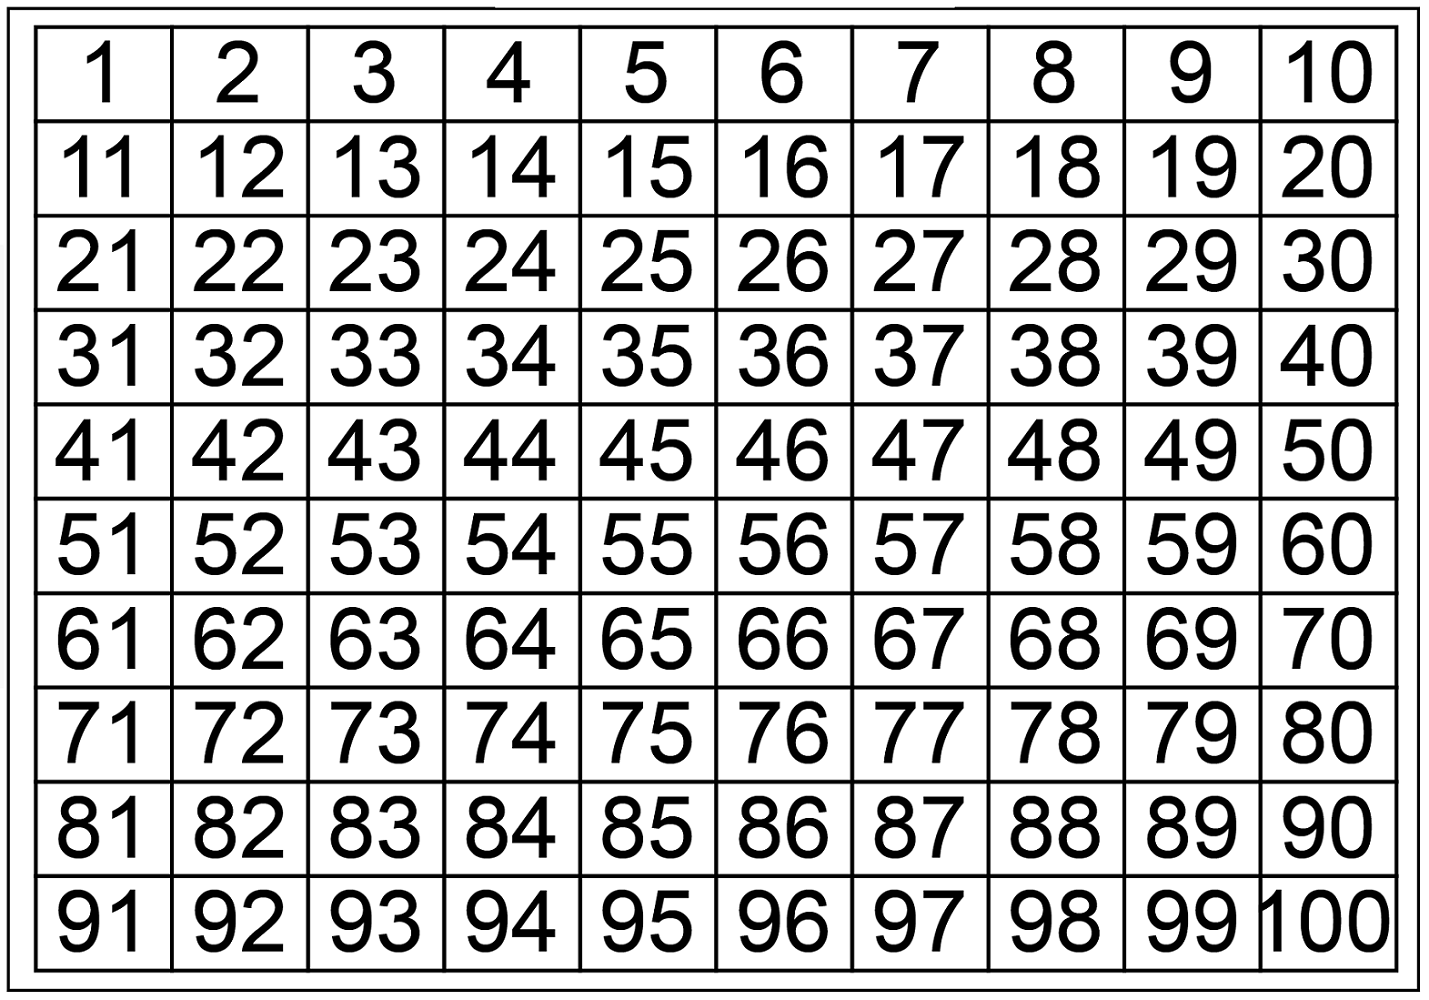 chart of numbers 1-100 written out